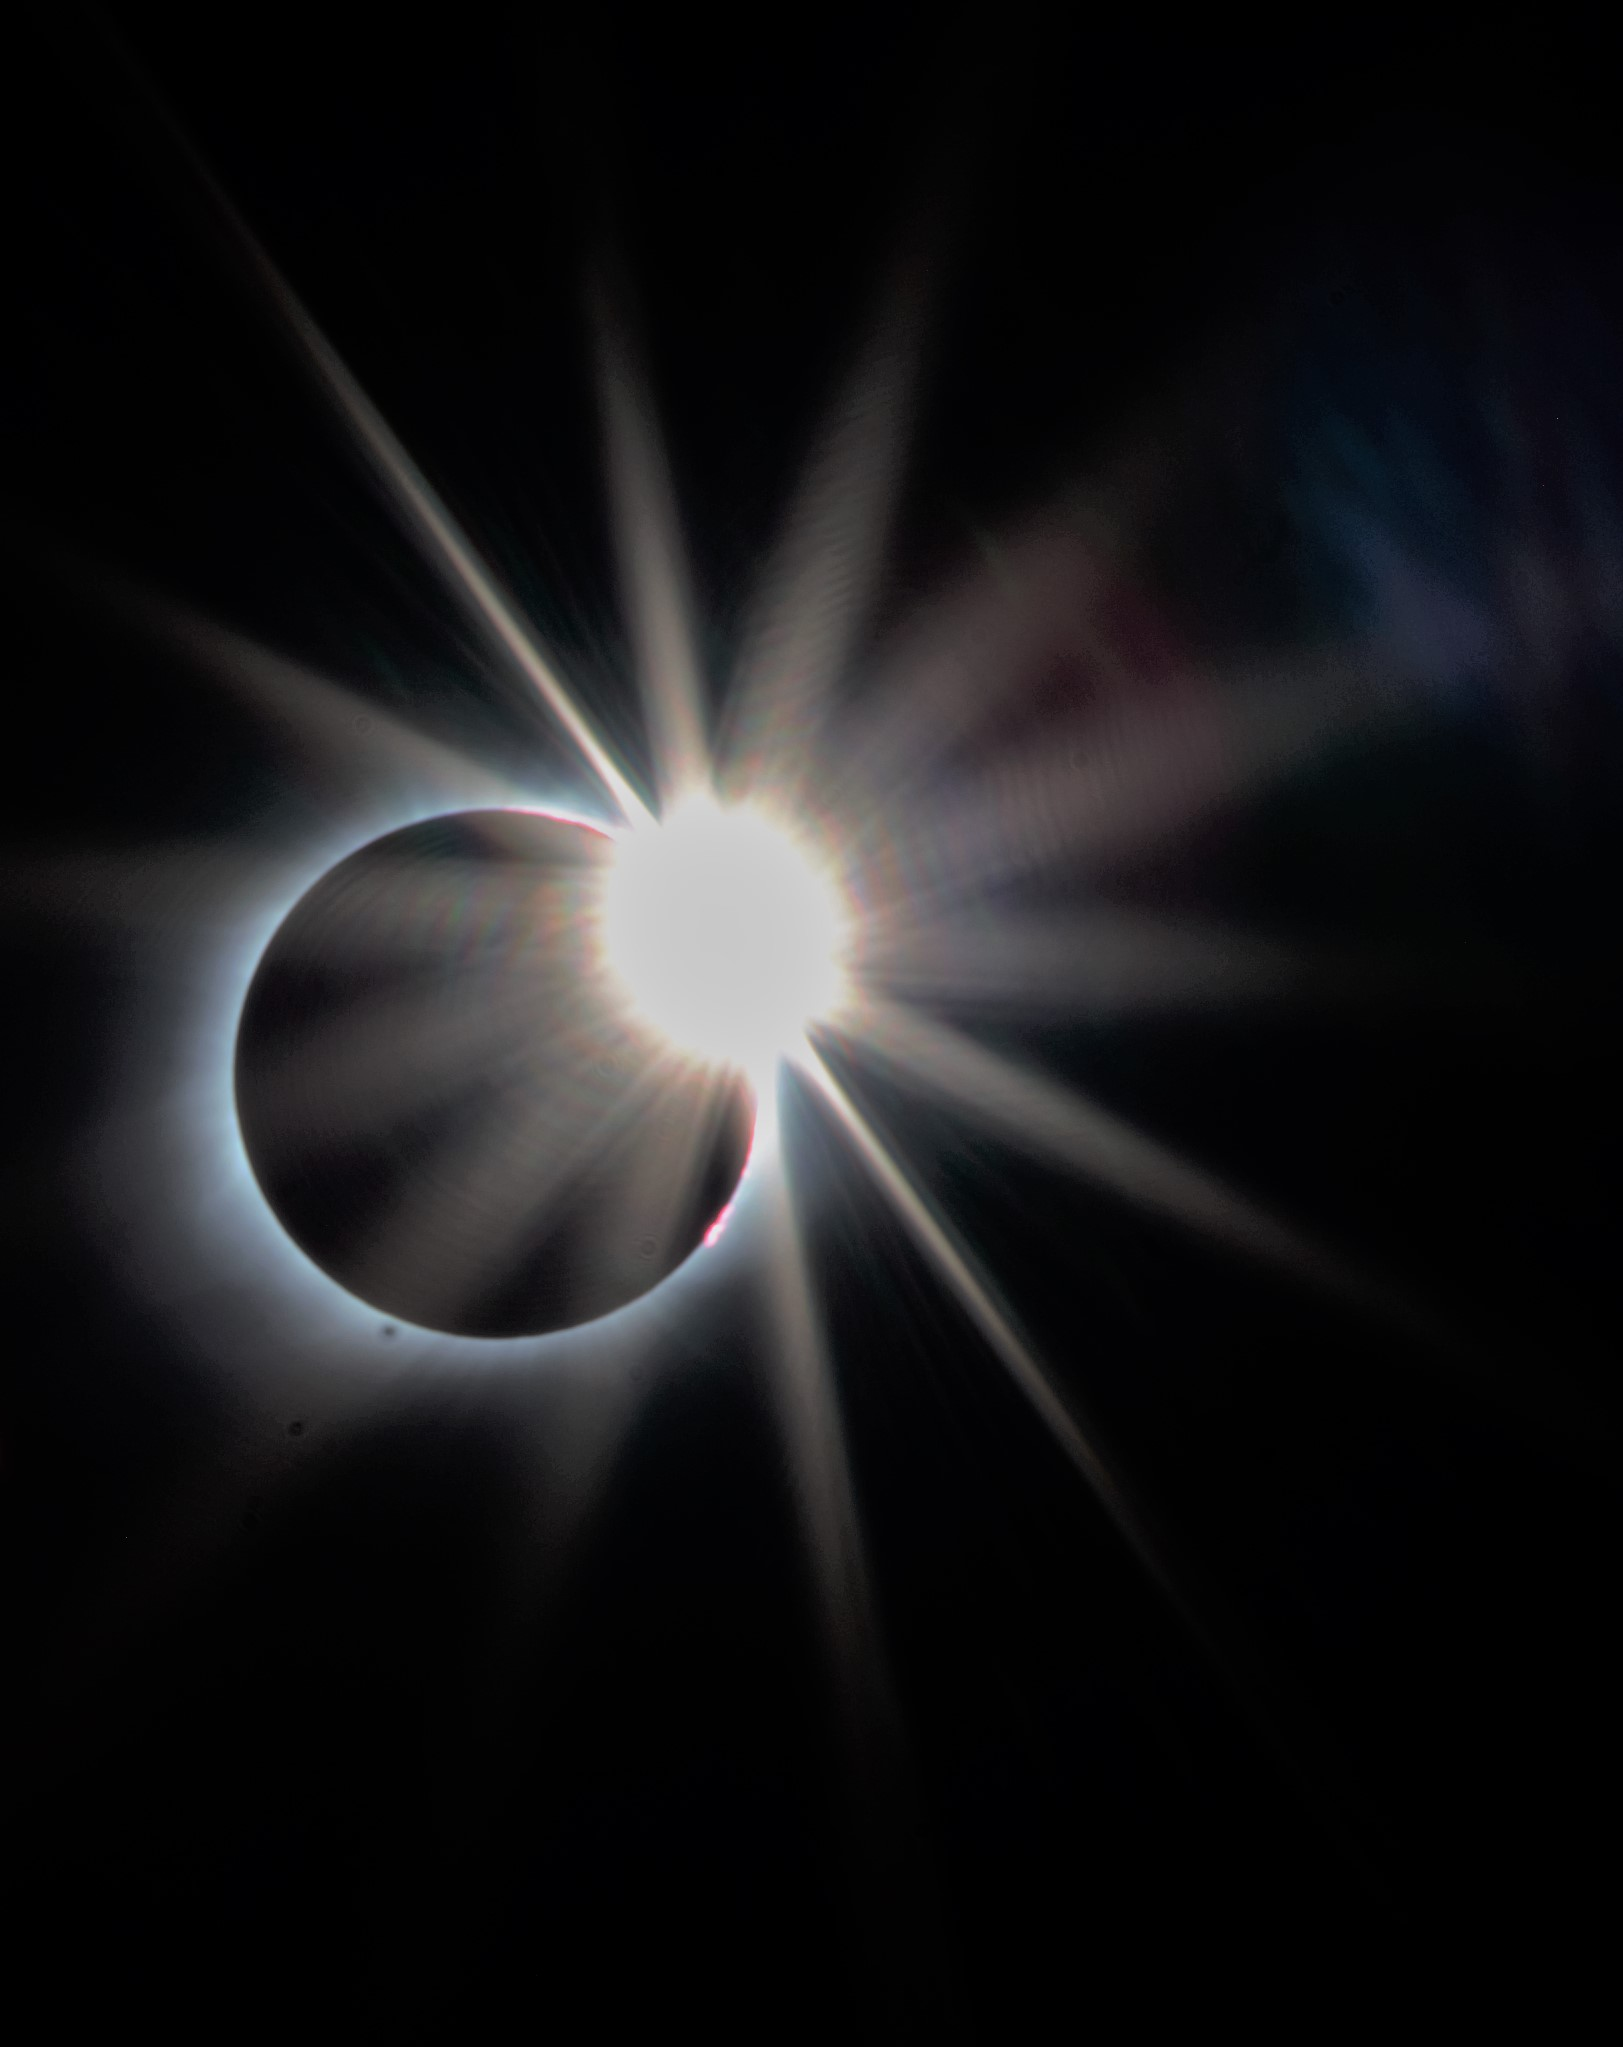 Solar Eclipse Wikipedia Image Moonphasesdiagramjpg For Term Side Of Card Diamond Ring Effect At Third Contact Marking The End Totality Some Prominences Can Also Be Seen